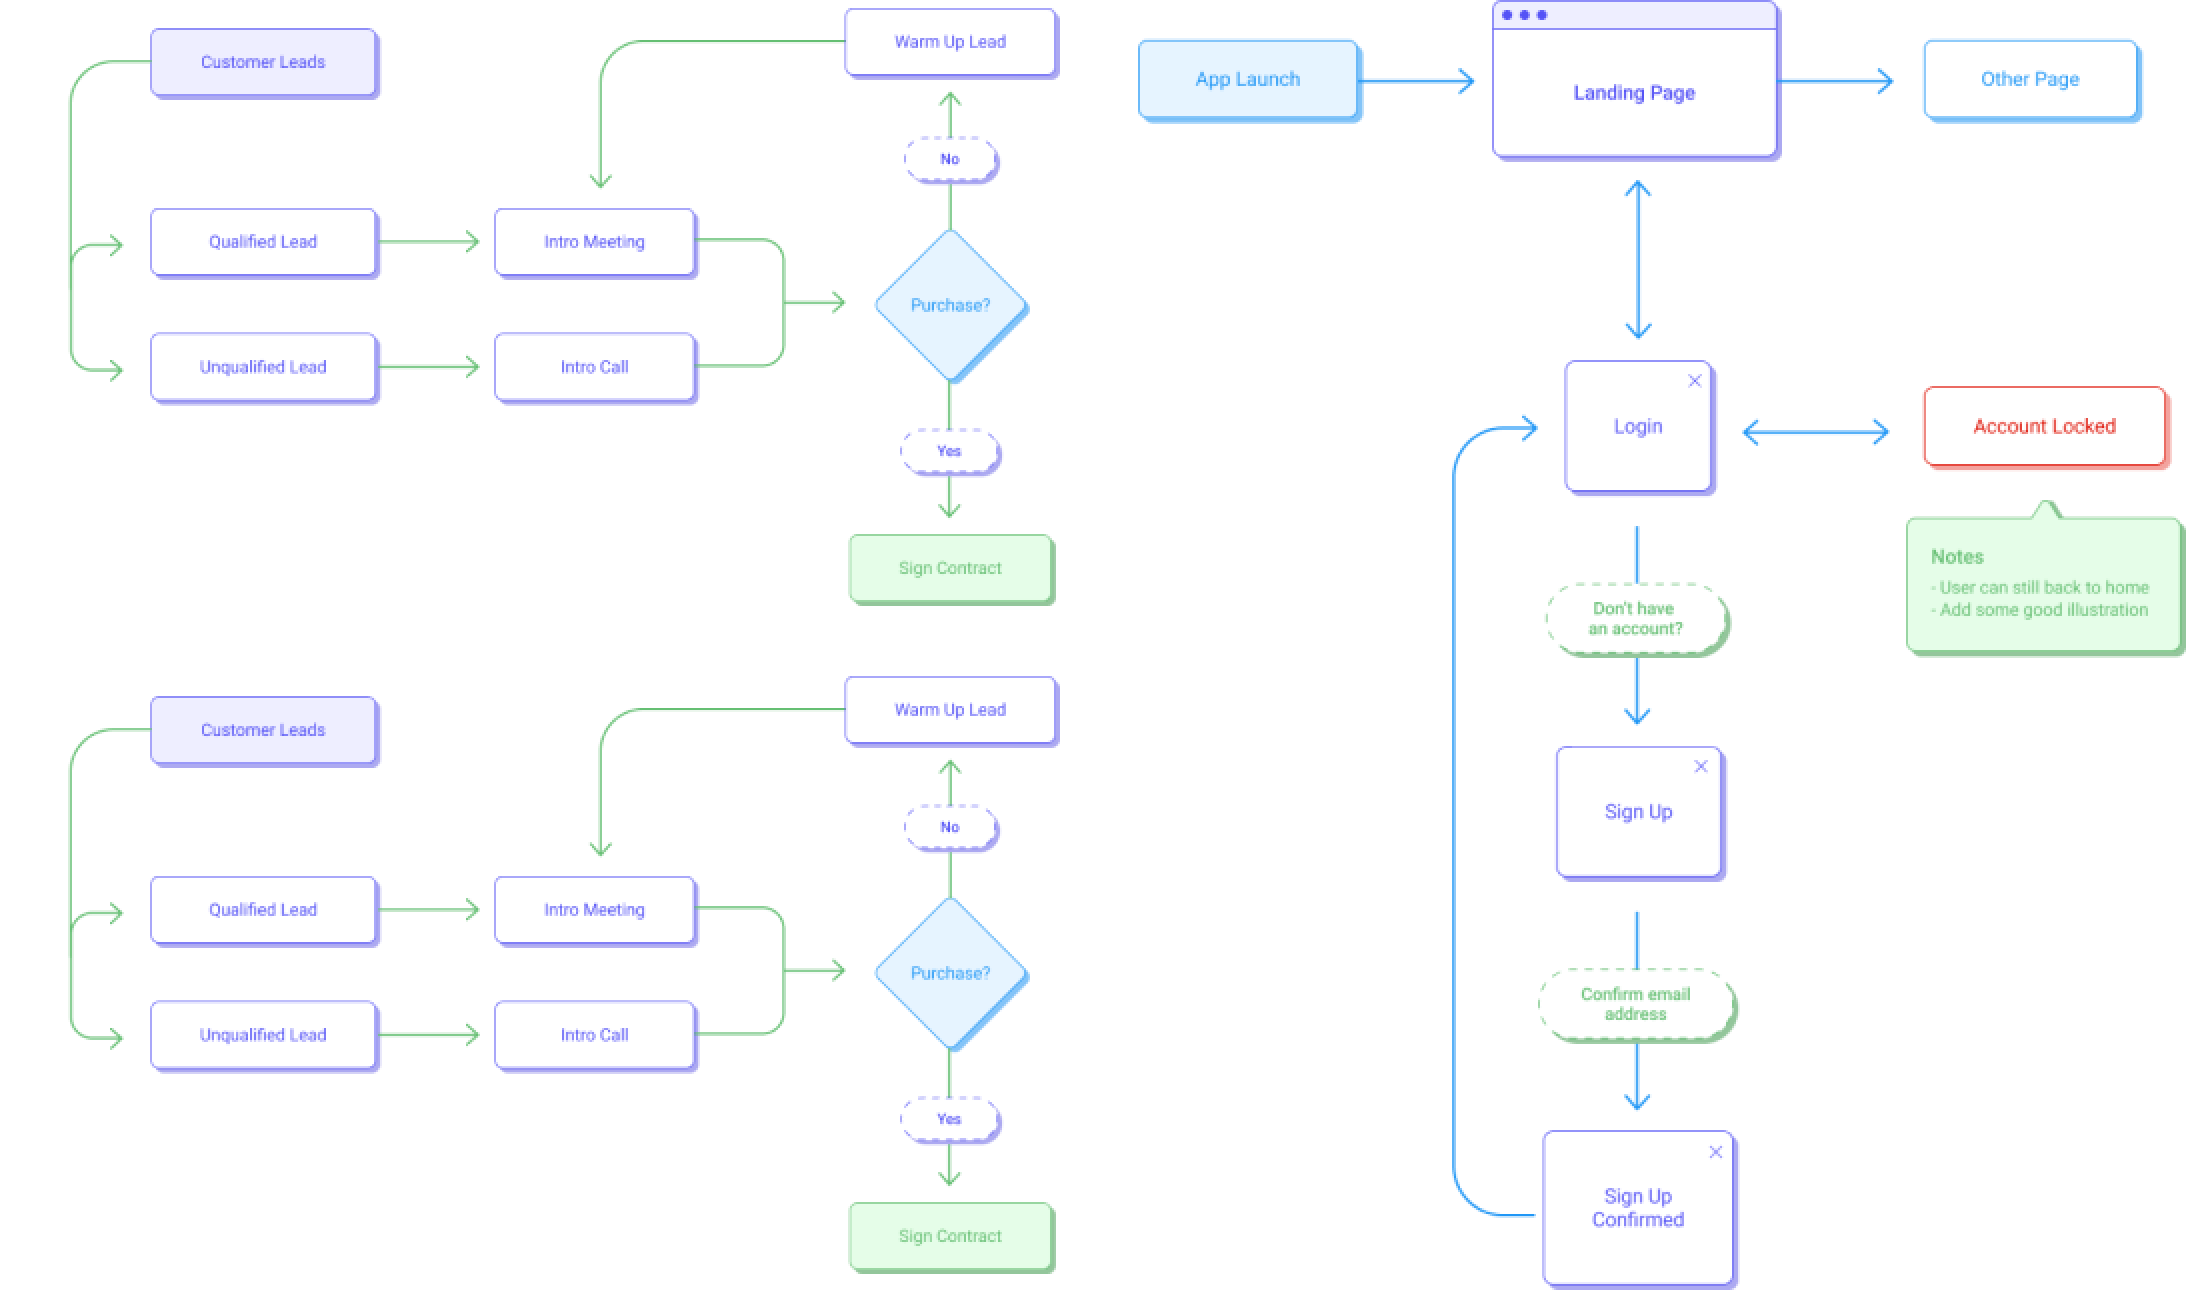 An image of a workflow.